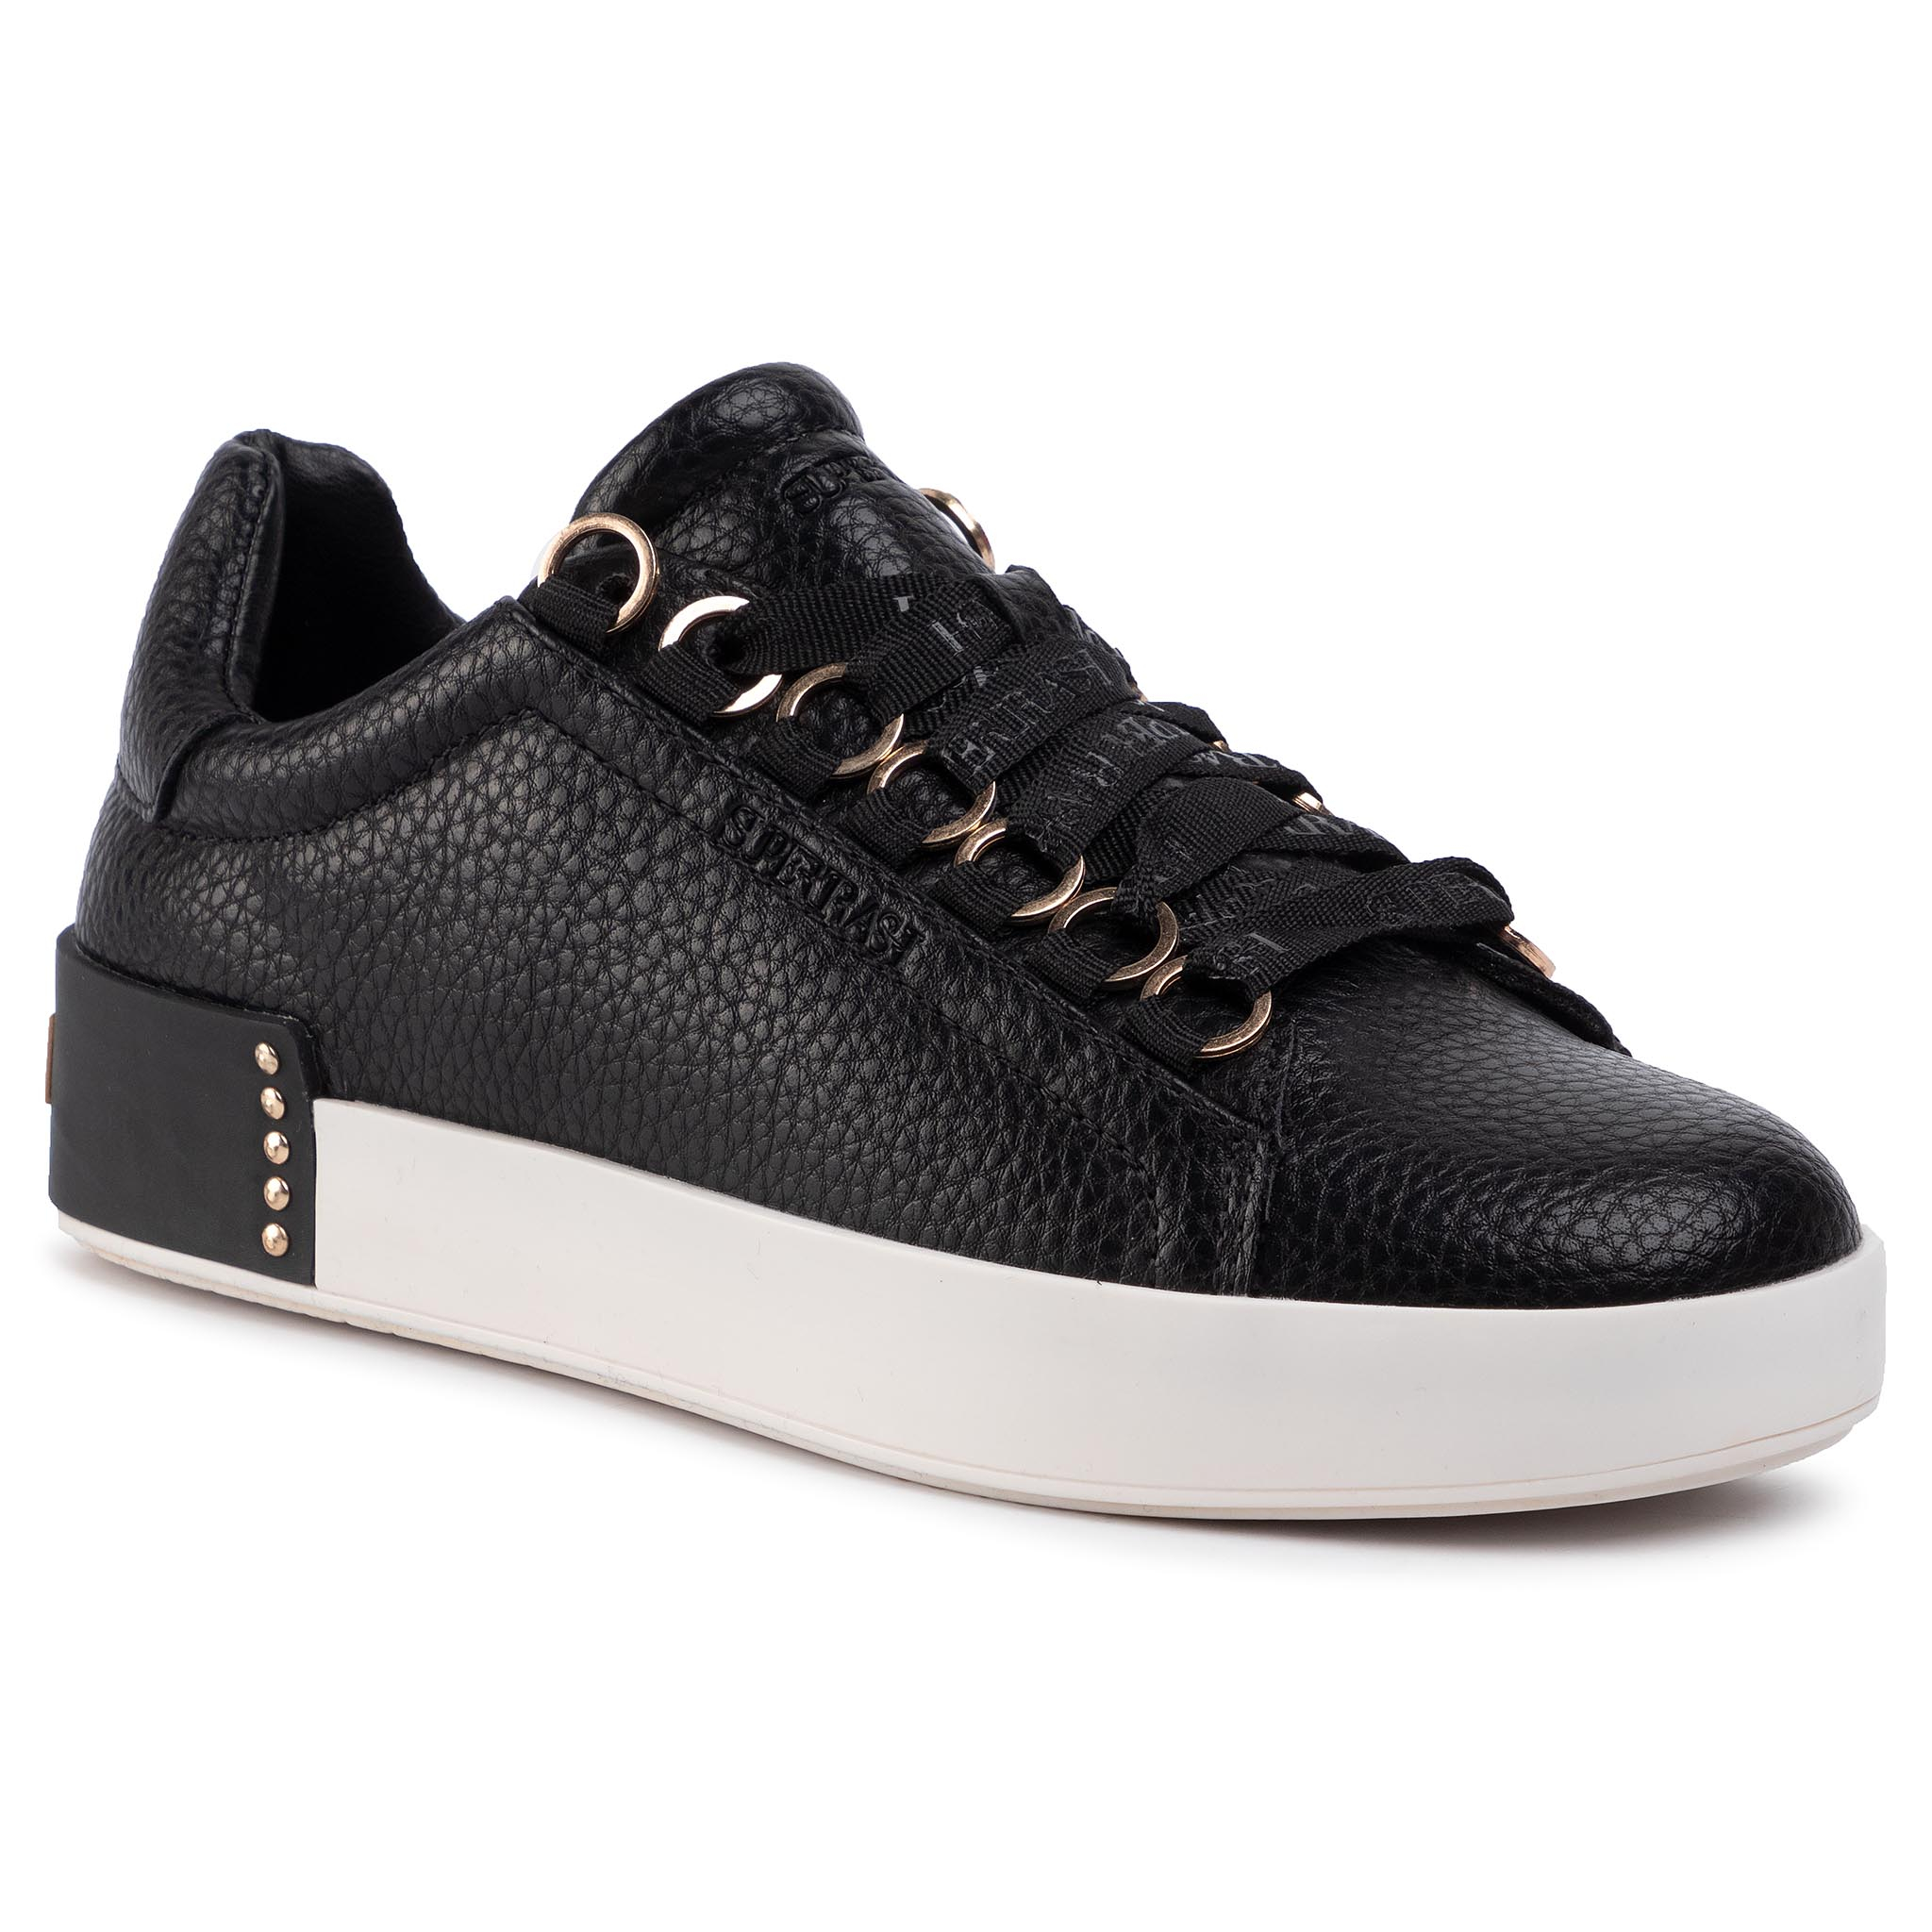 Sneakers SUPERTRASH - Lina Low Lea 1941 001501 Black 0999